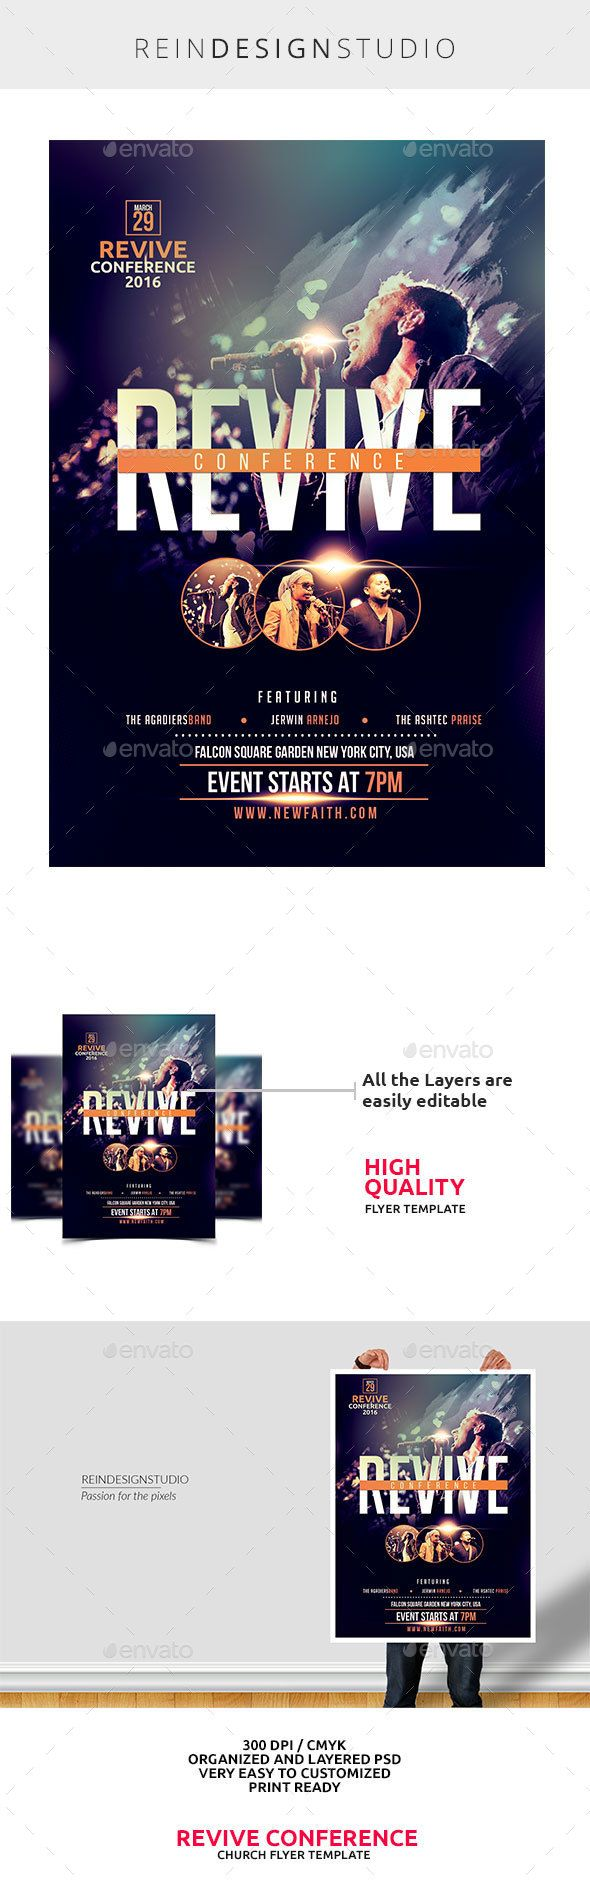 Revive Conference Church Flyer Portfolio Flyer Design Flyer